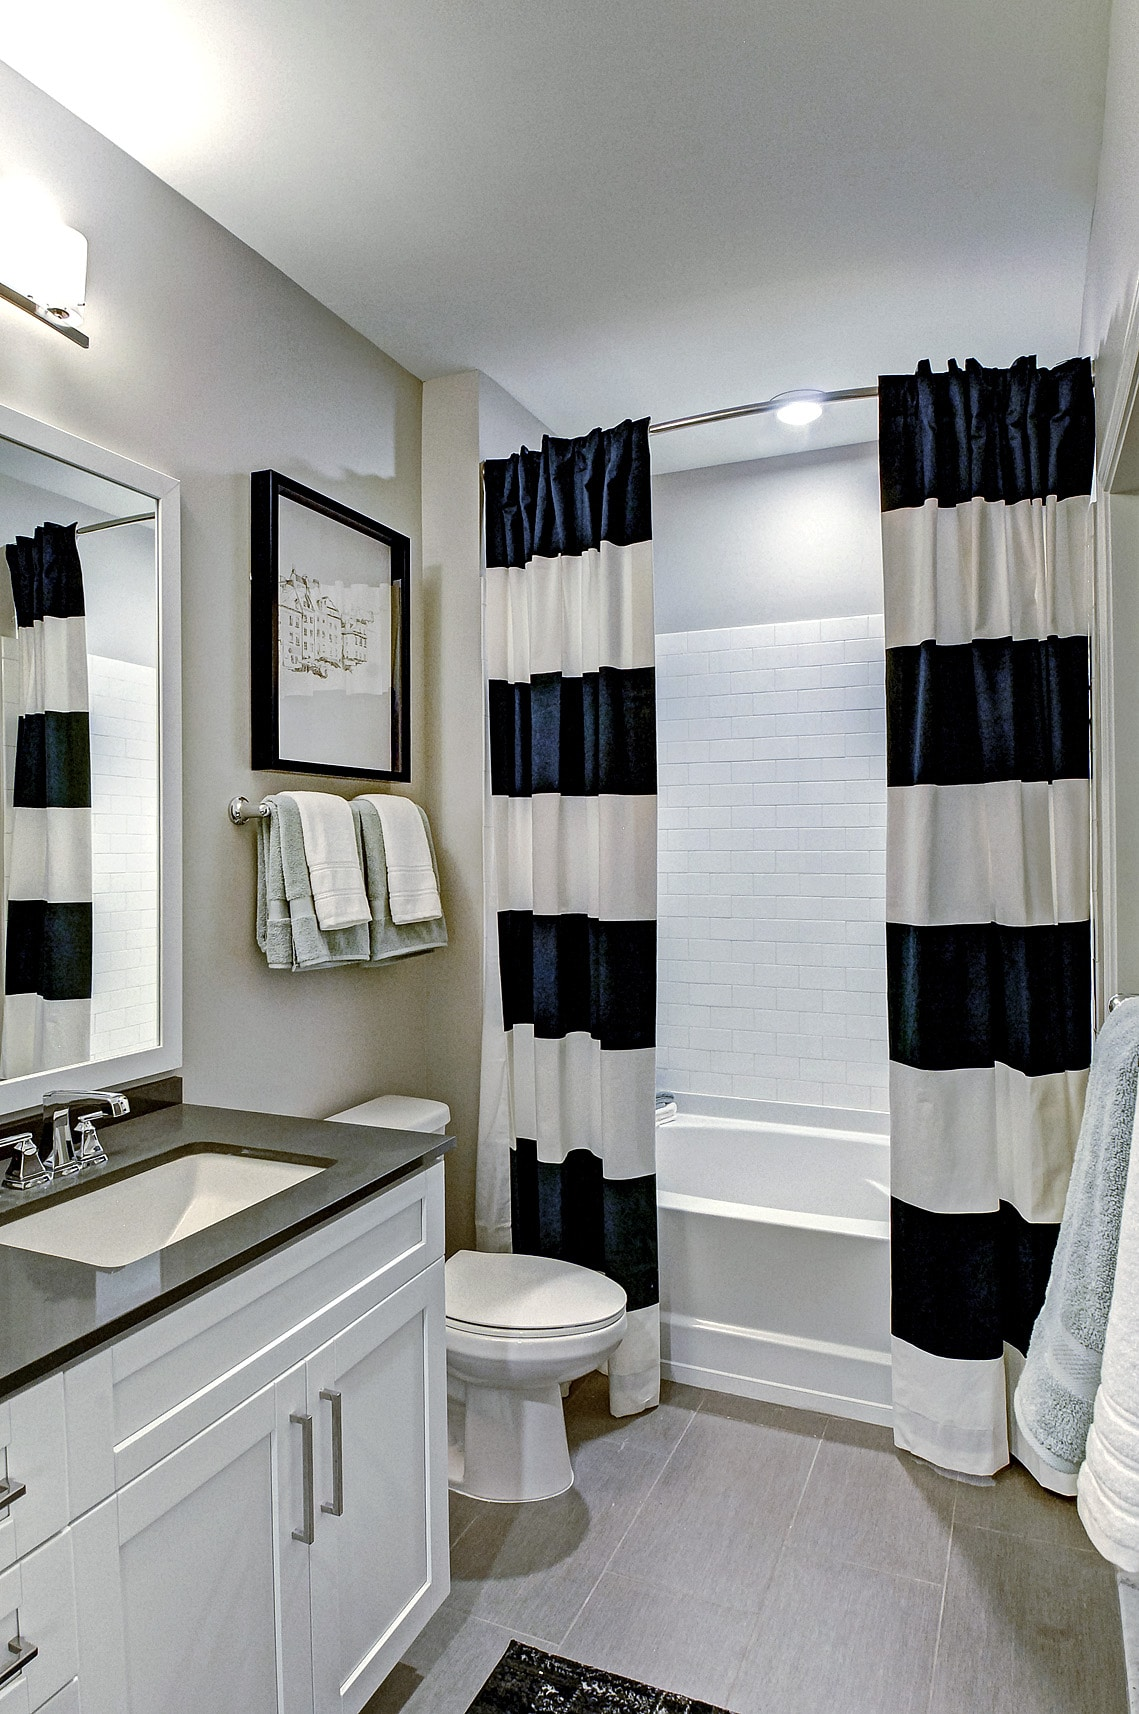 bathroom-Maybrook luxury apartments_DSC2472_4_6 web